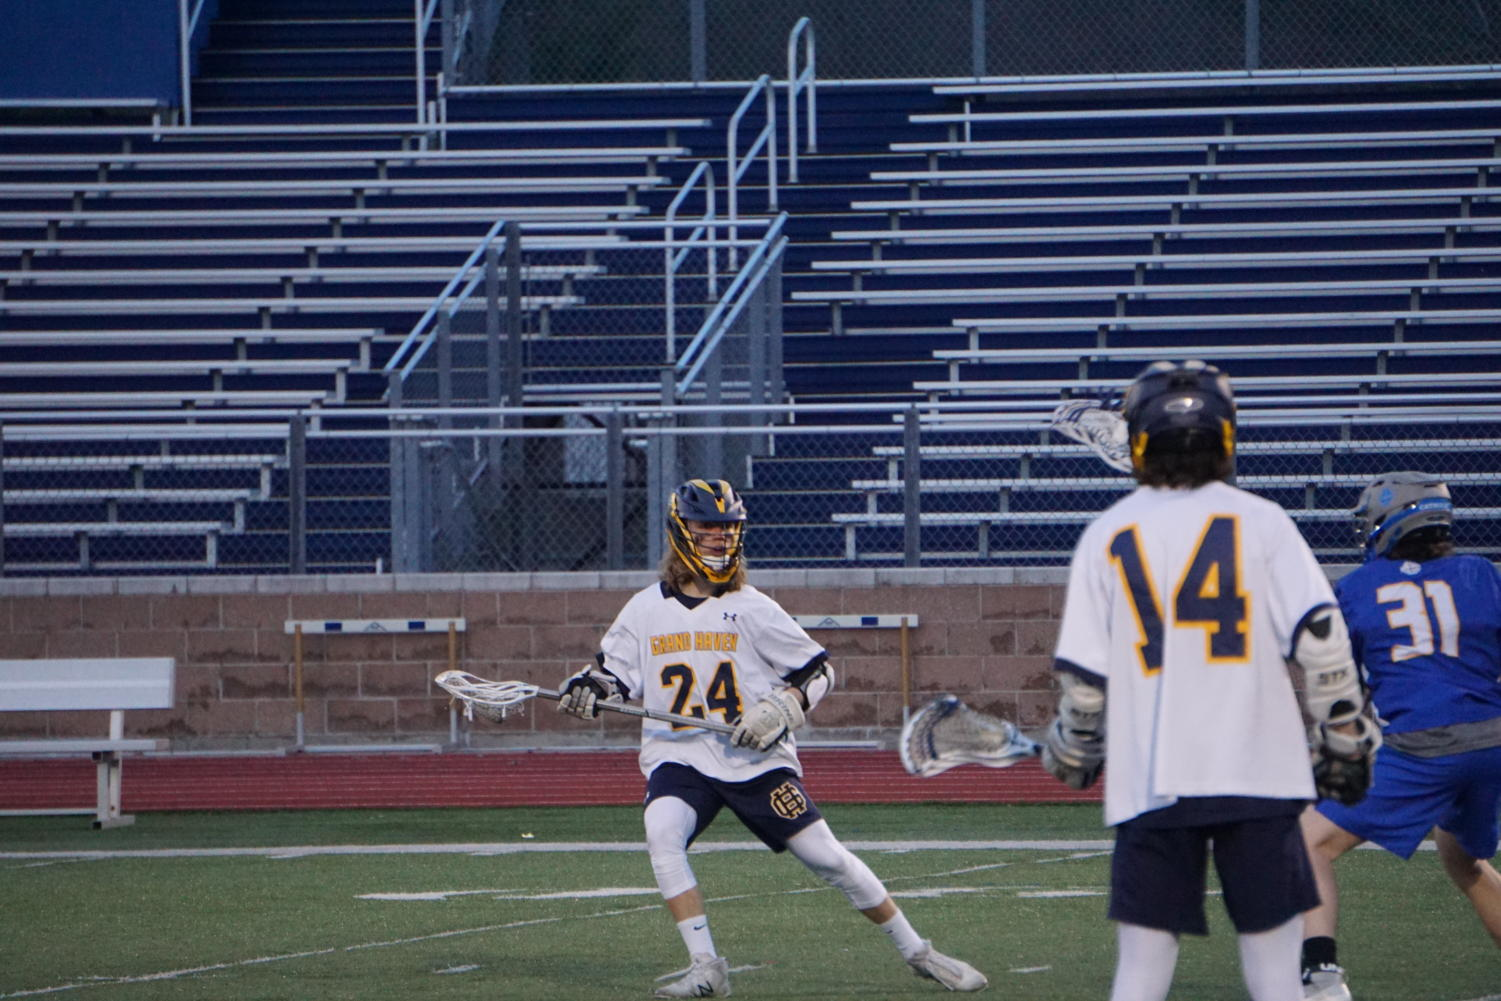 Junior Mitch Bosgraaf looks to set up for a shot on goal.